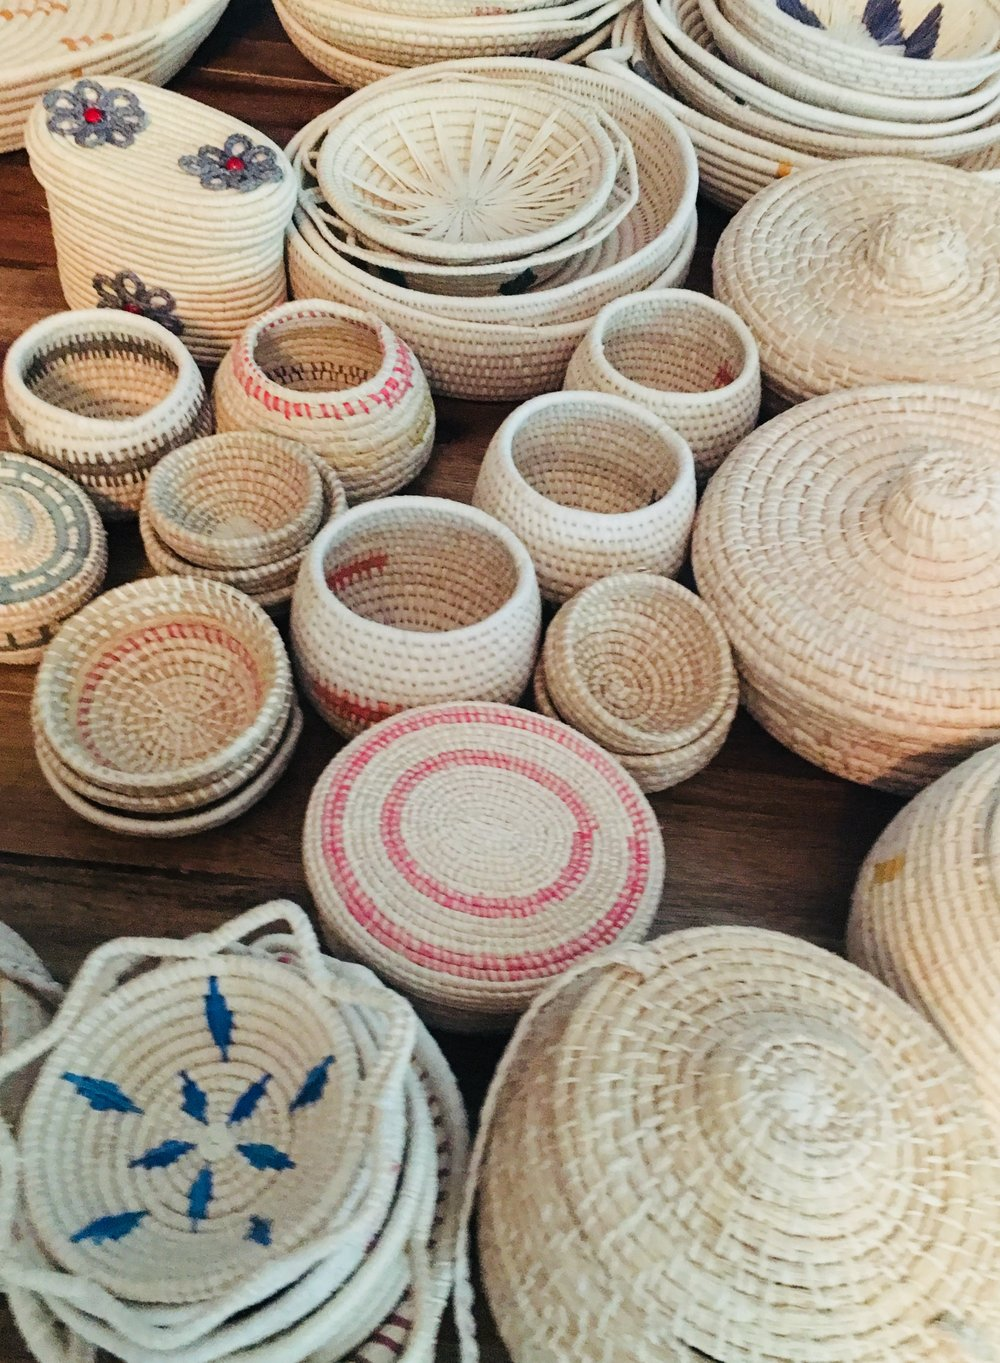 Artepuy - Handmade Craft from Venezuela!!! Warao Indian Baskets (Delta del Orinoco, Venezuela) ECO FRIENDLY and more!!https://www.etsy.com/shop/ArtTepuy